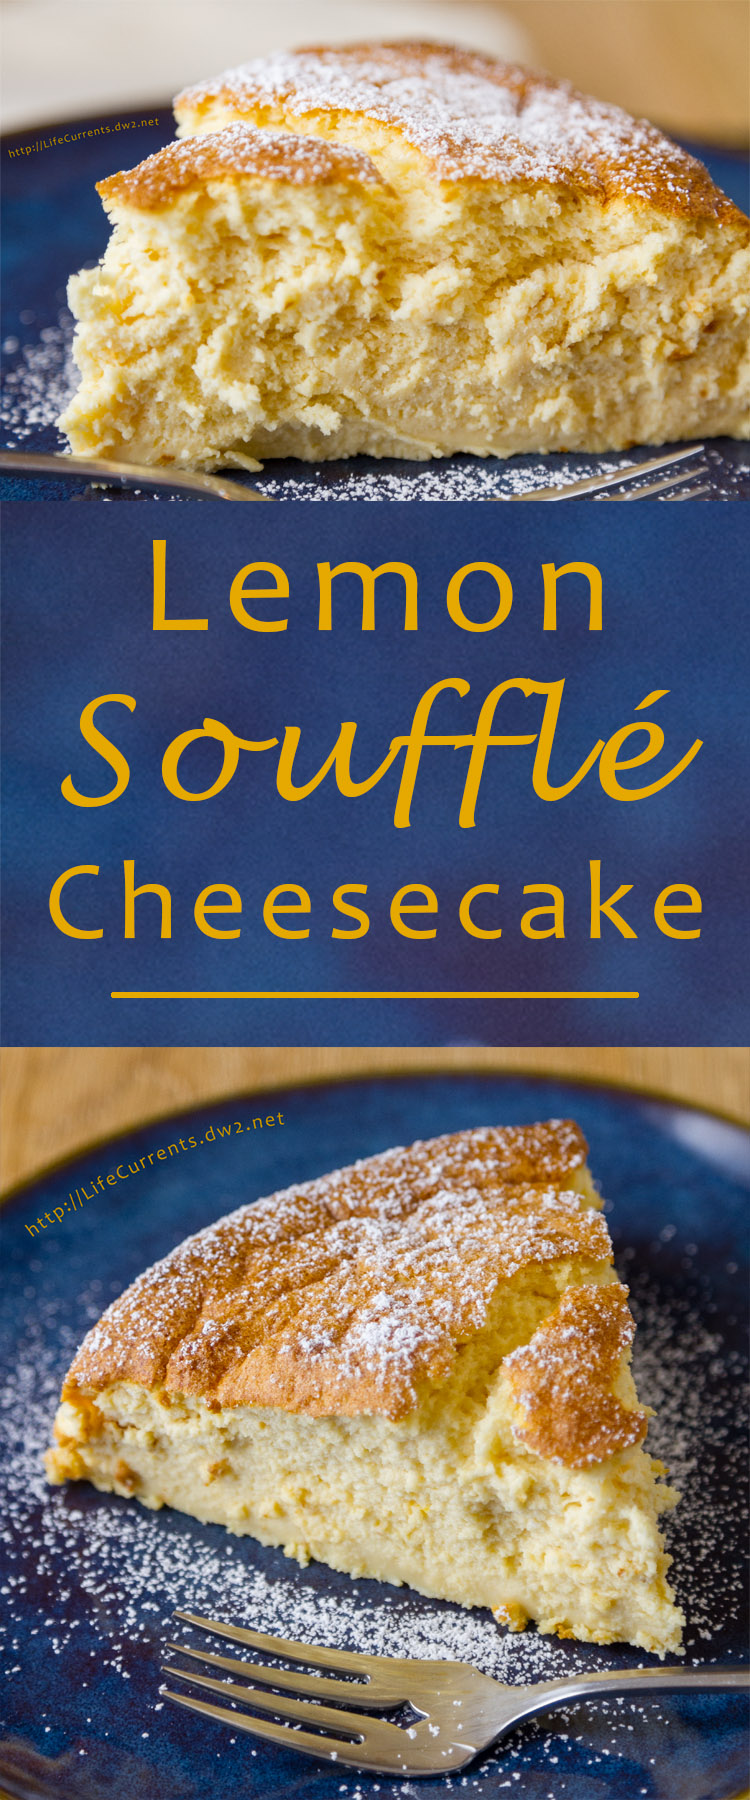 Lemon Soufflé Cheesecake - light and airy, creamy, delicious!